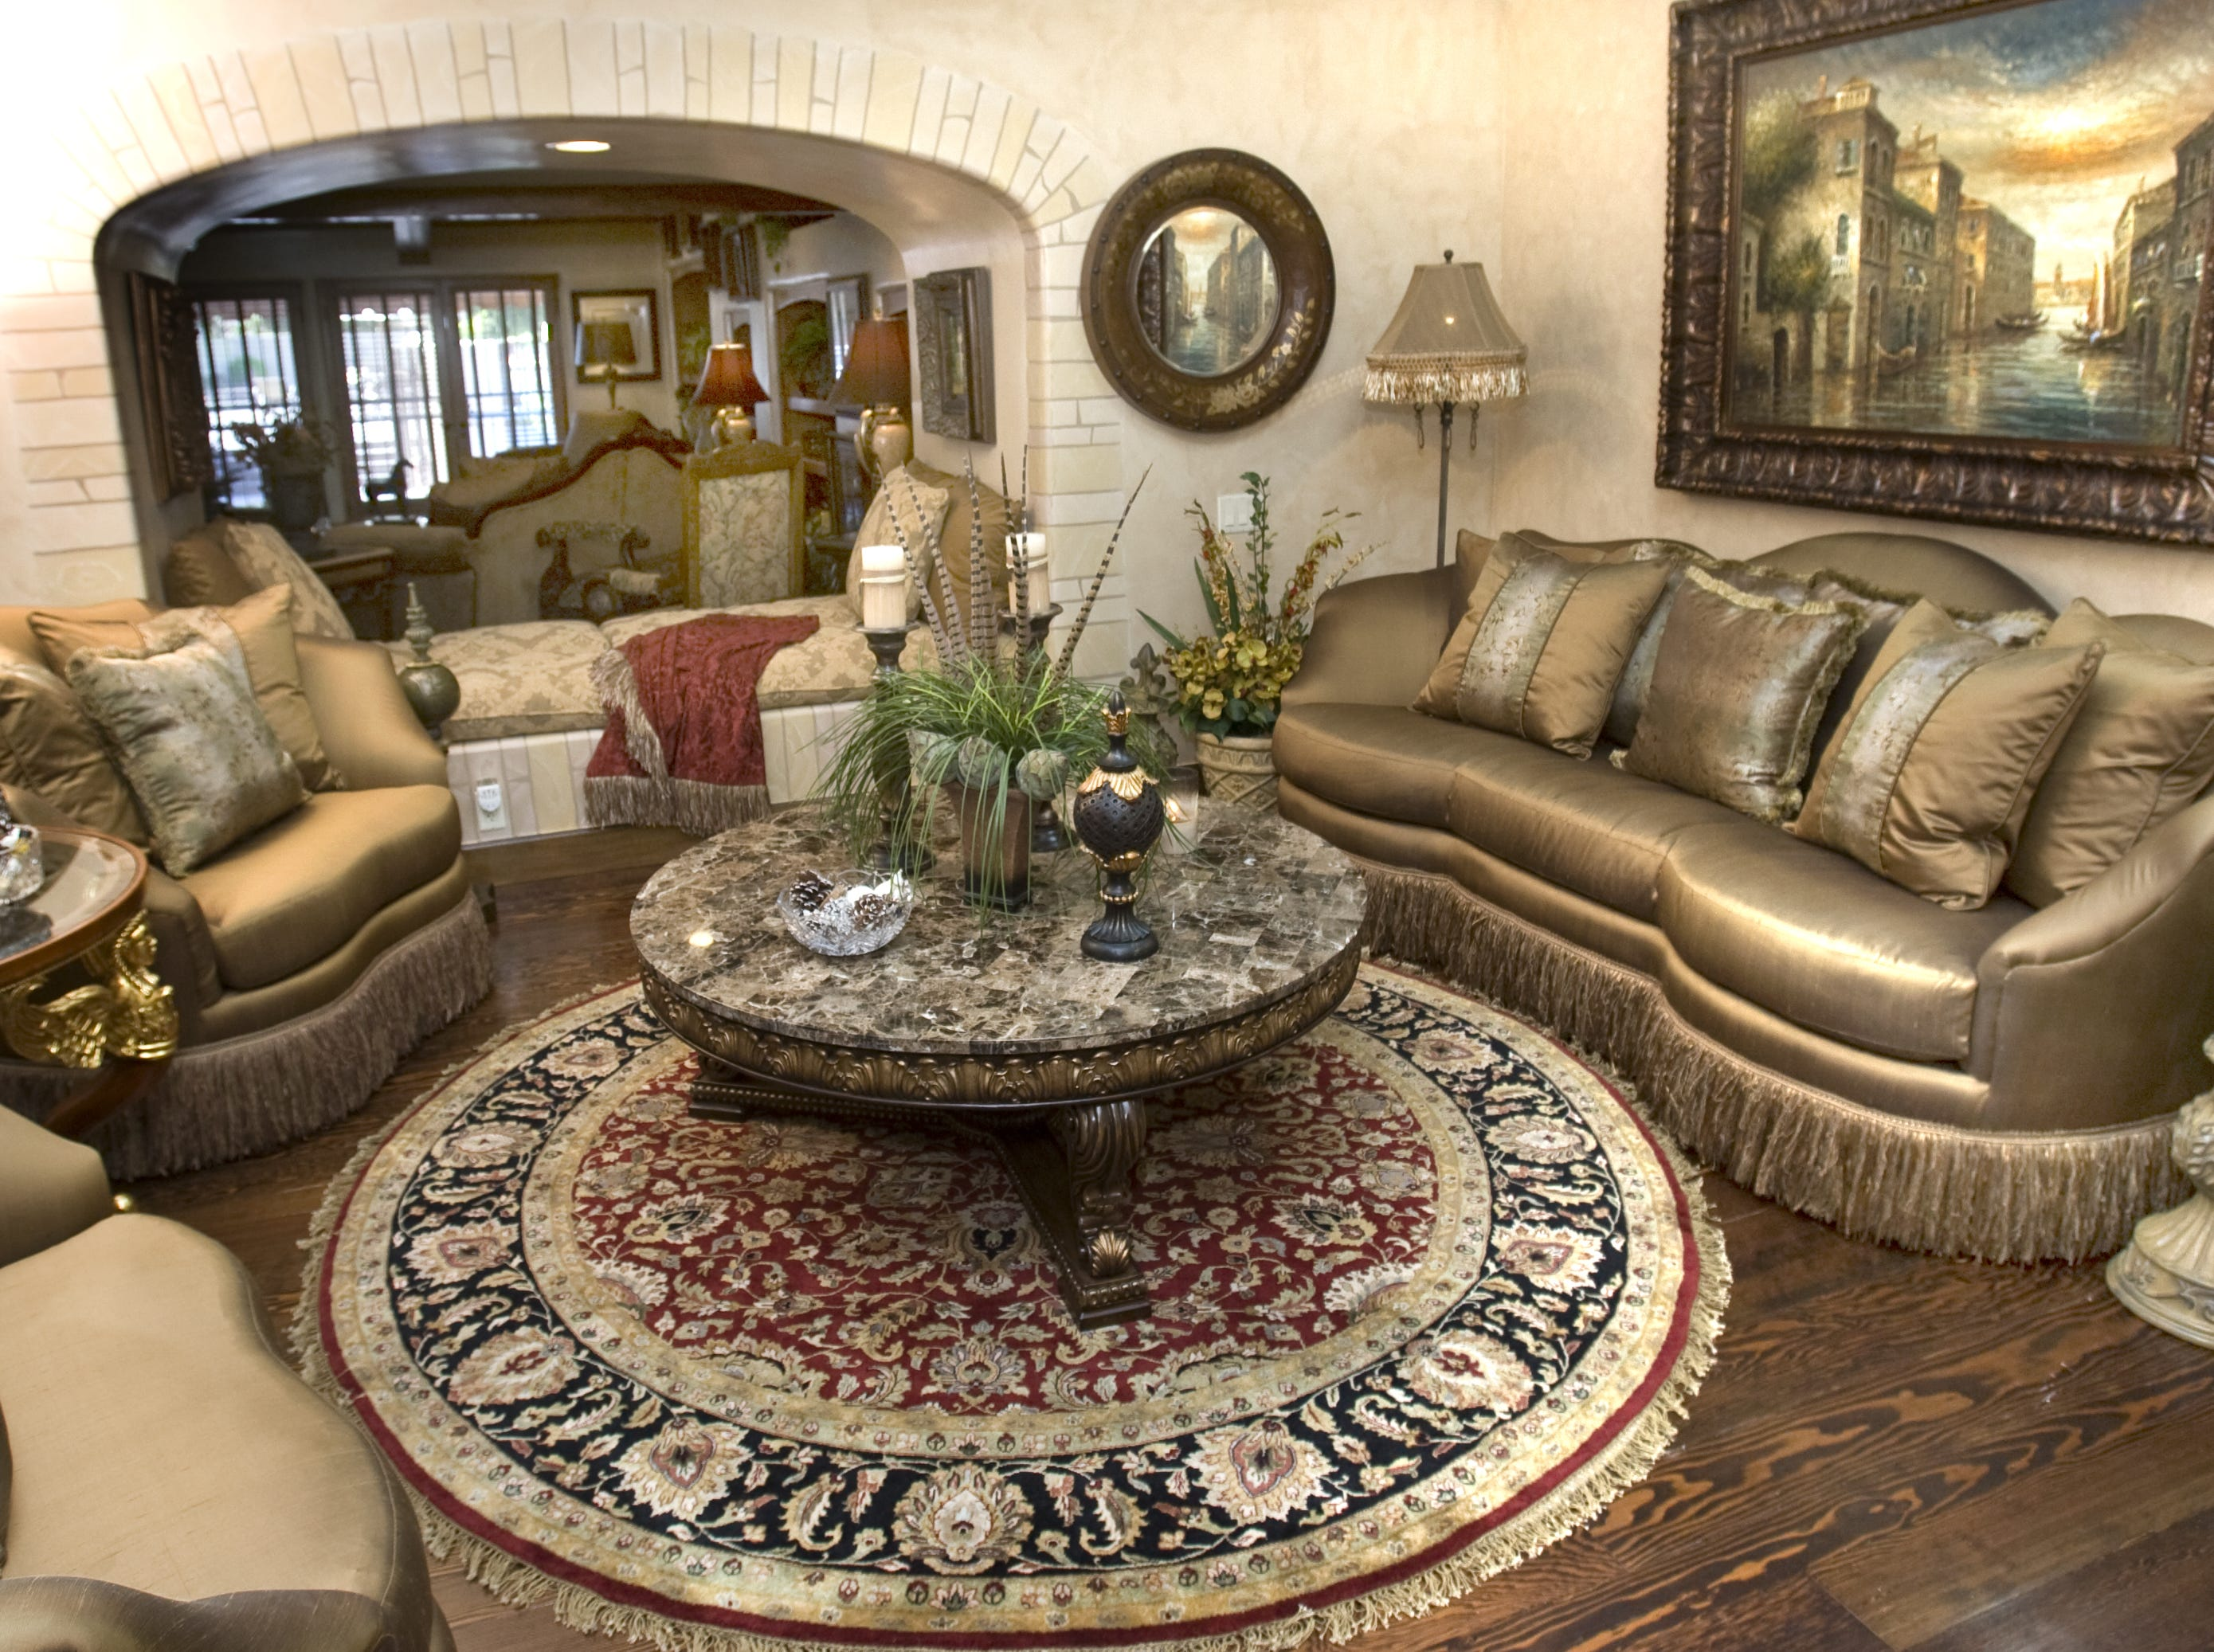 A front sitting room in the former home of  Sen. John and Cindy McCain is seen in 2008.